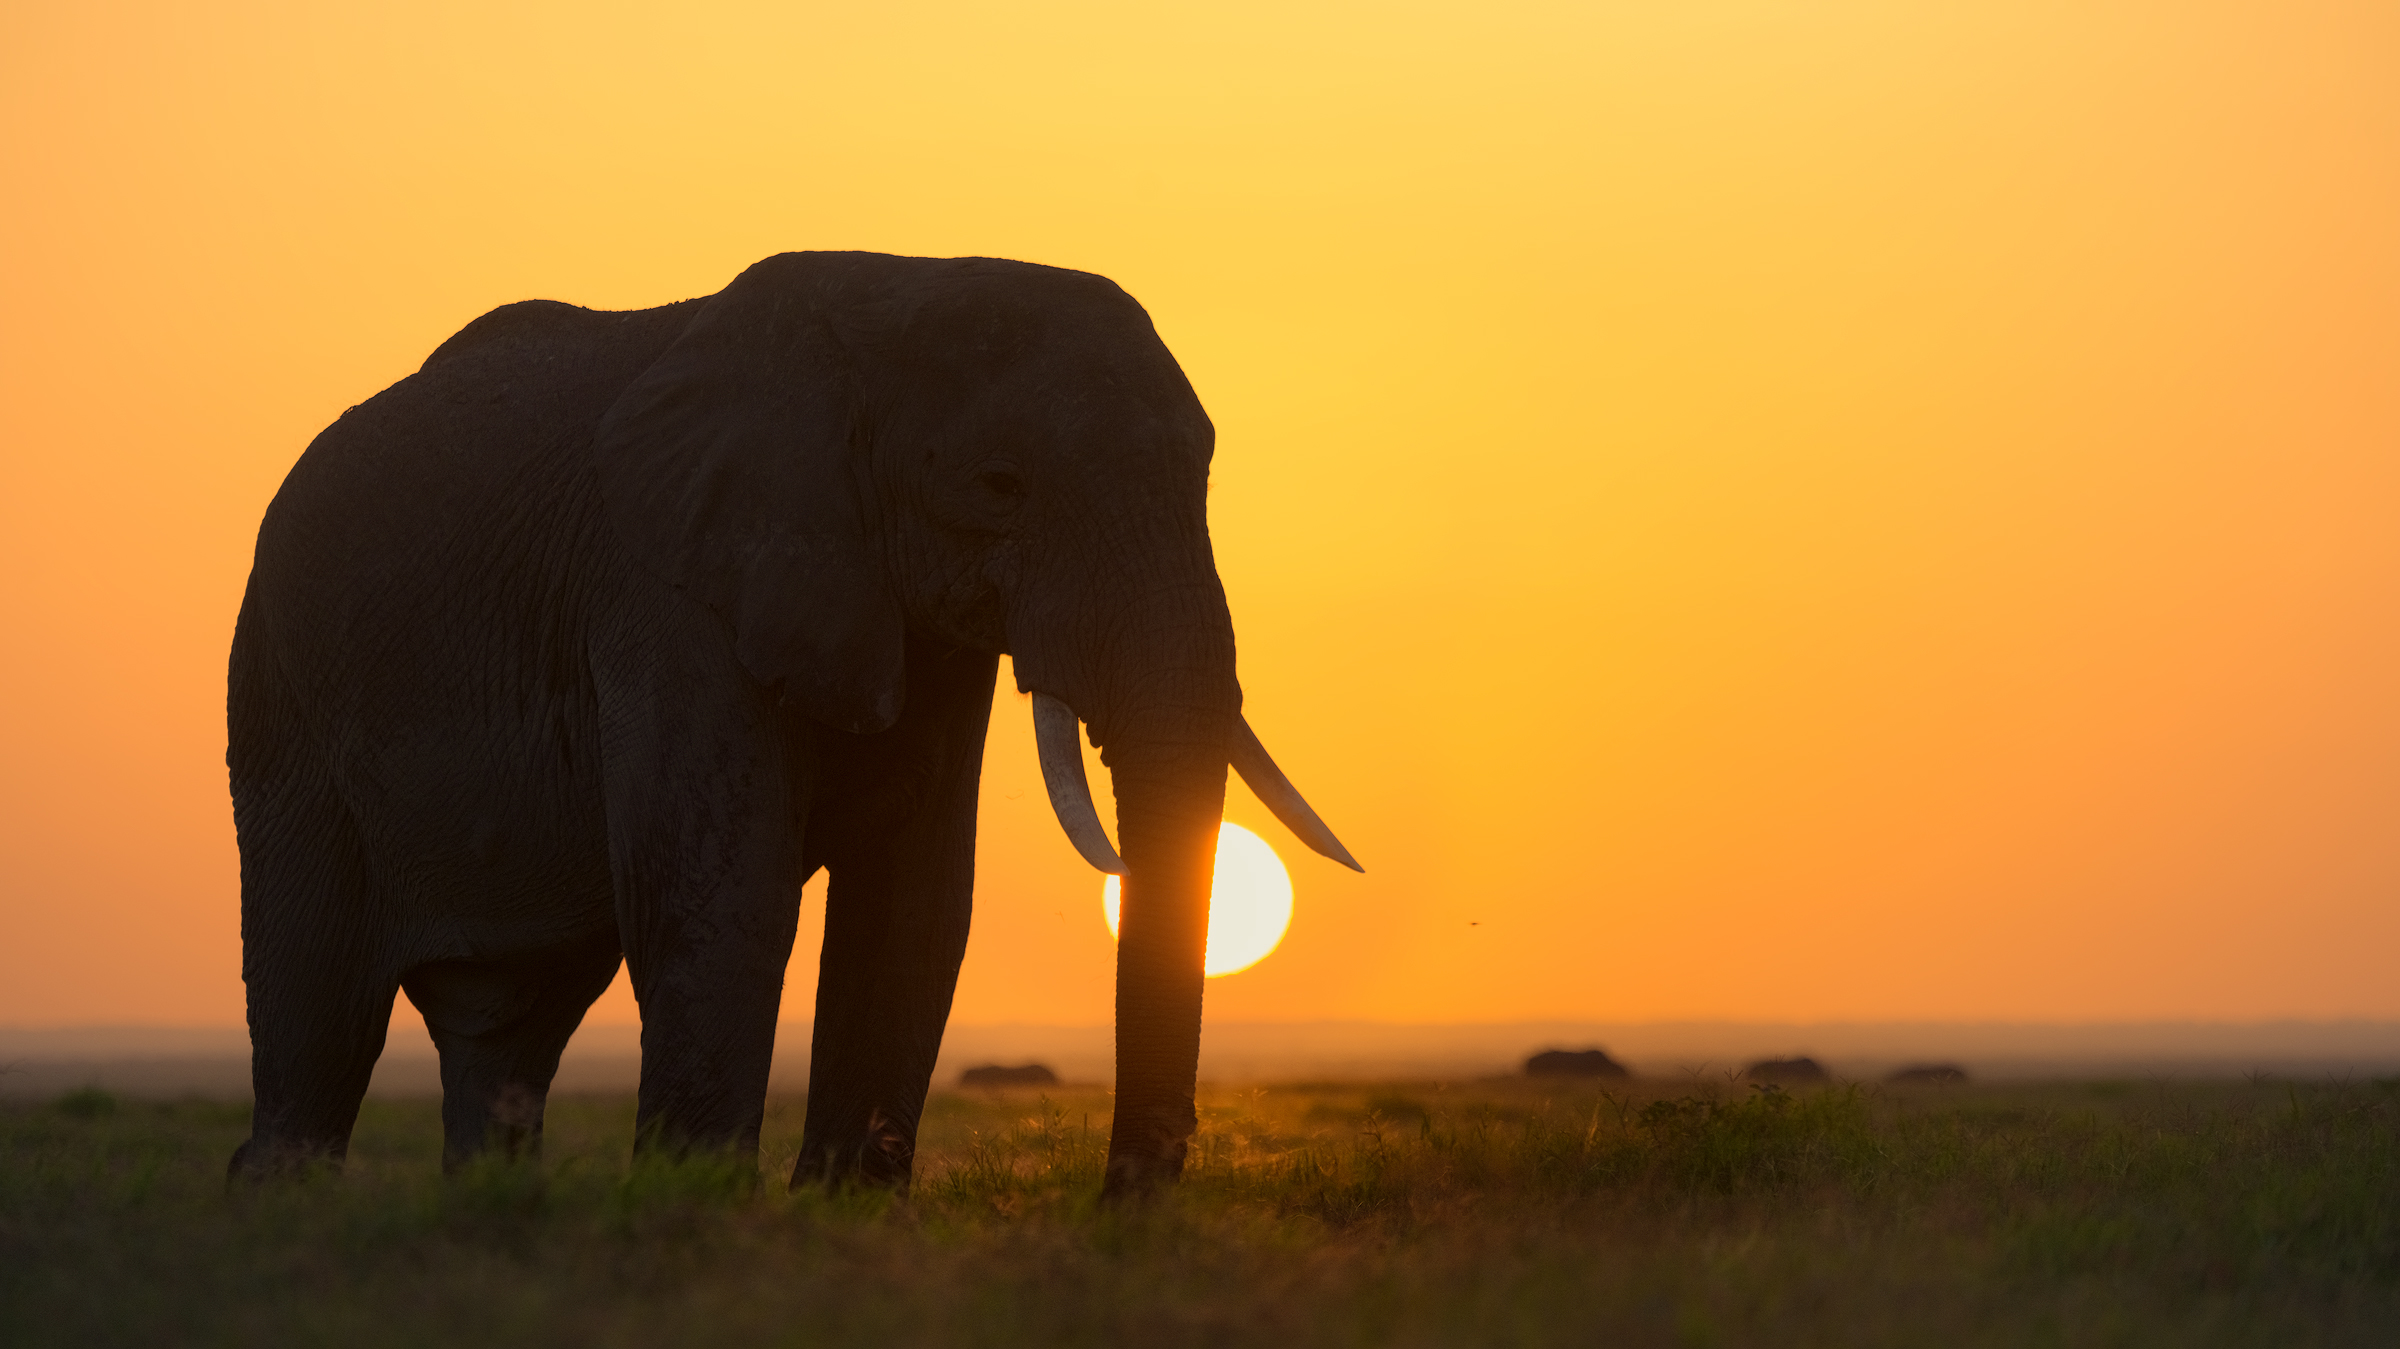 A new day in Africa...